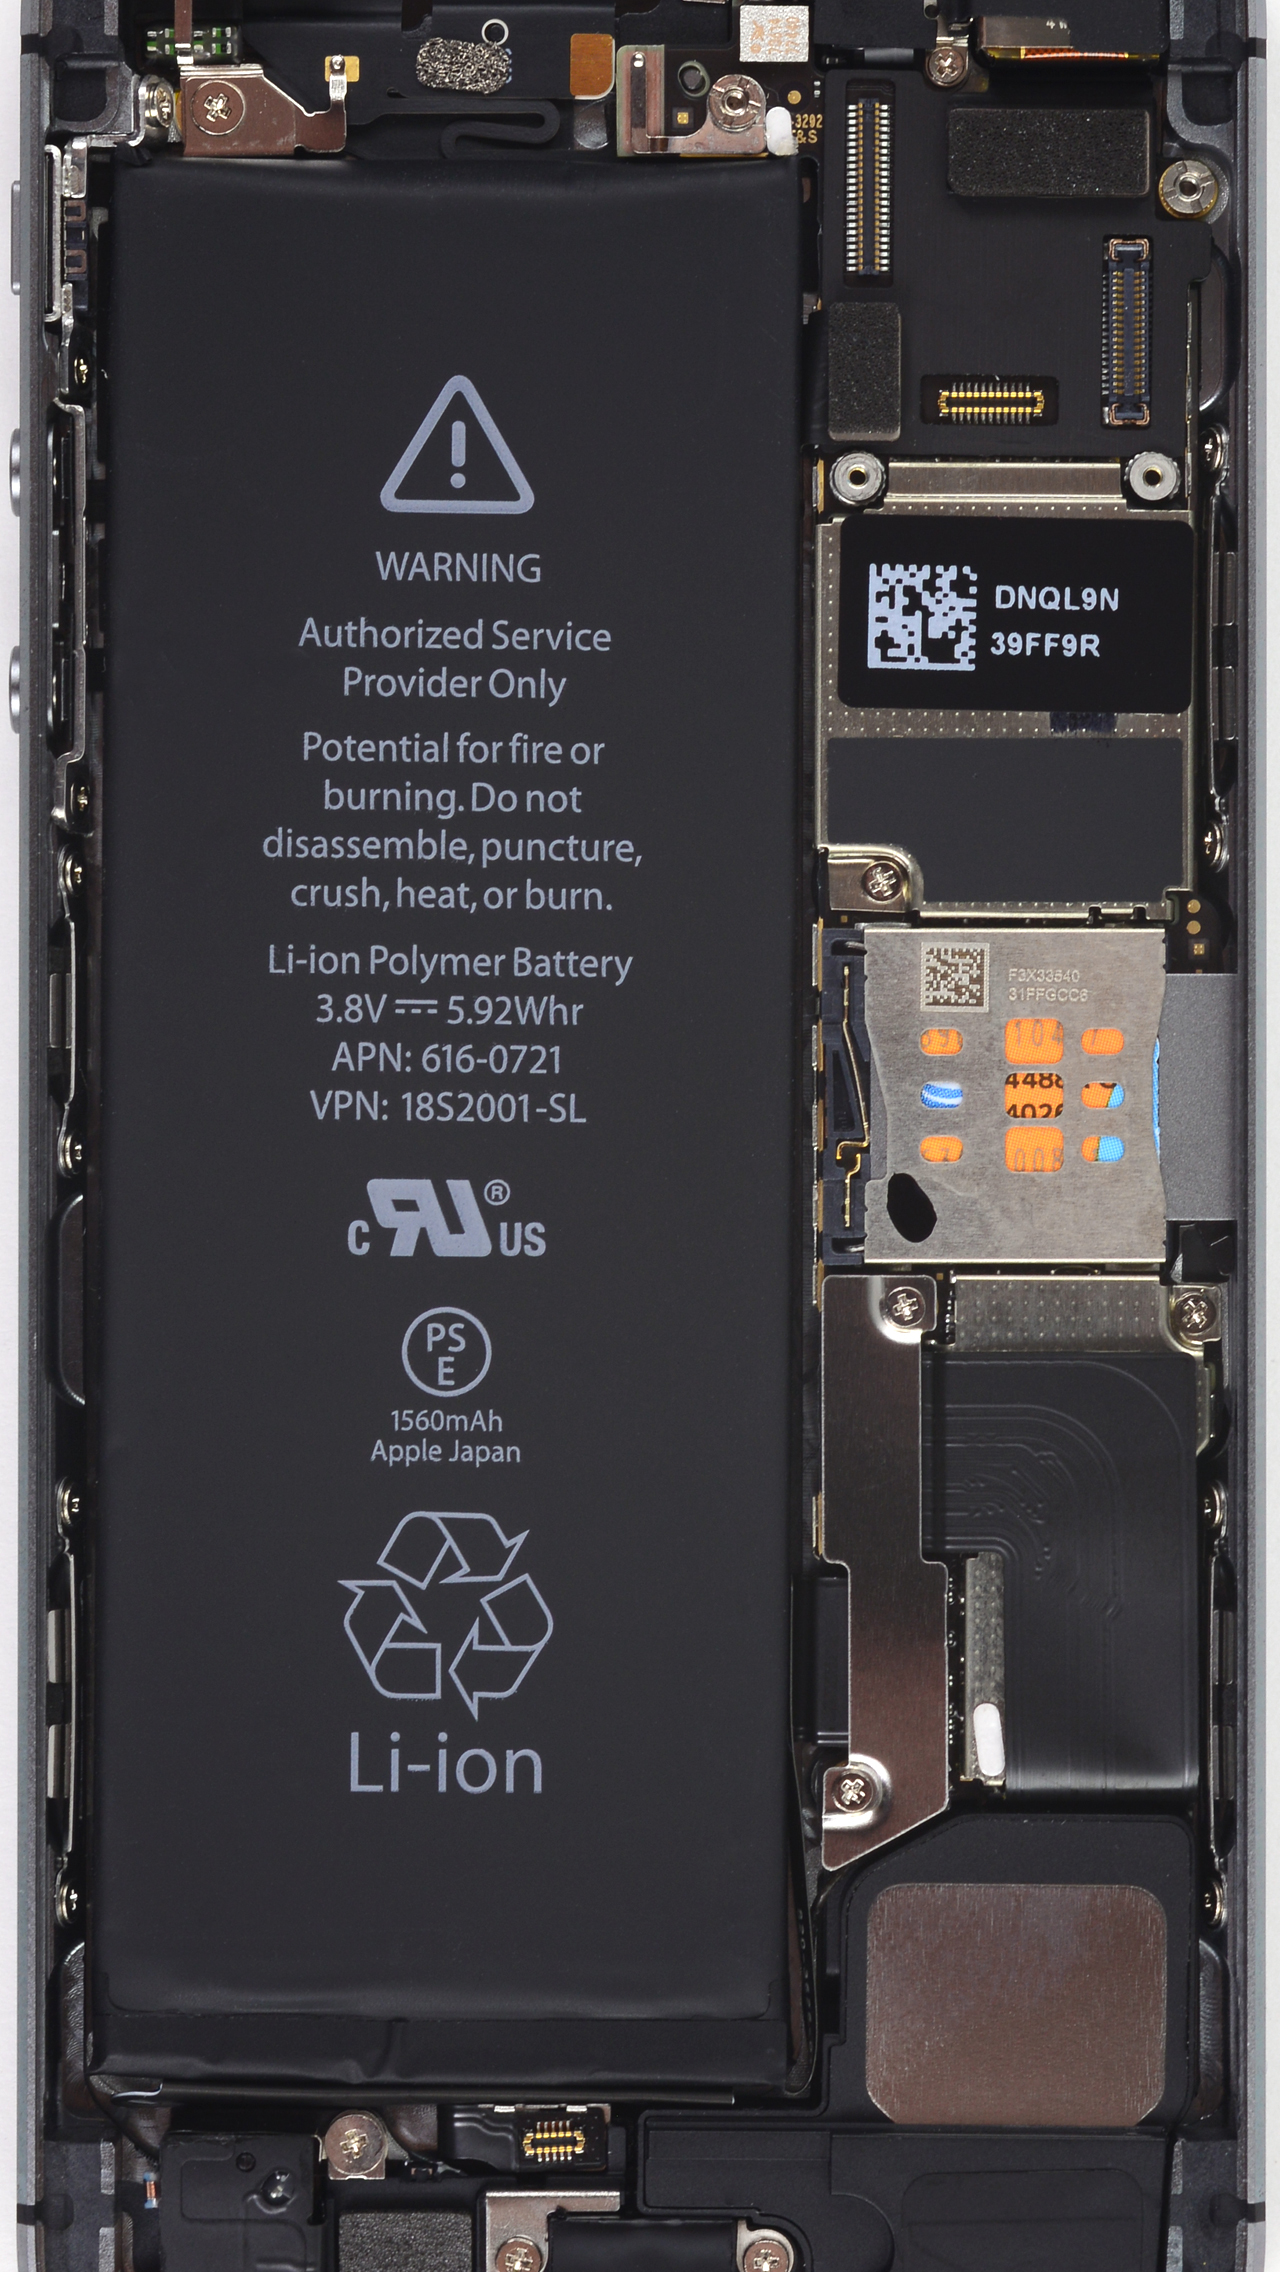 iPhone 5sc and iMac Internals Wallpapers iFixit 1280x2272